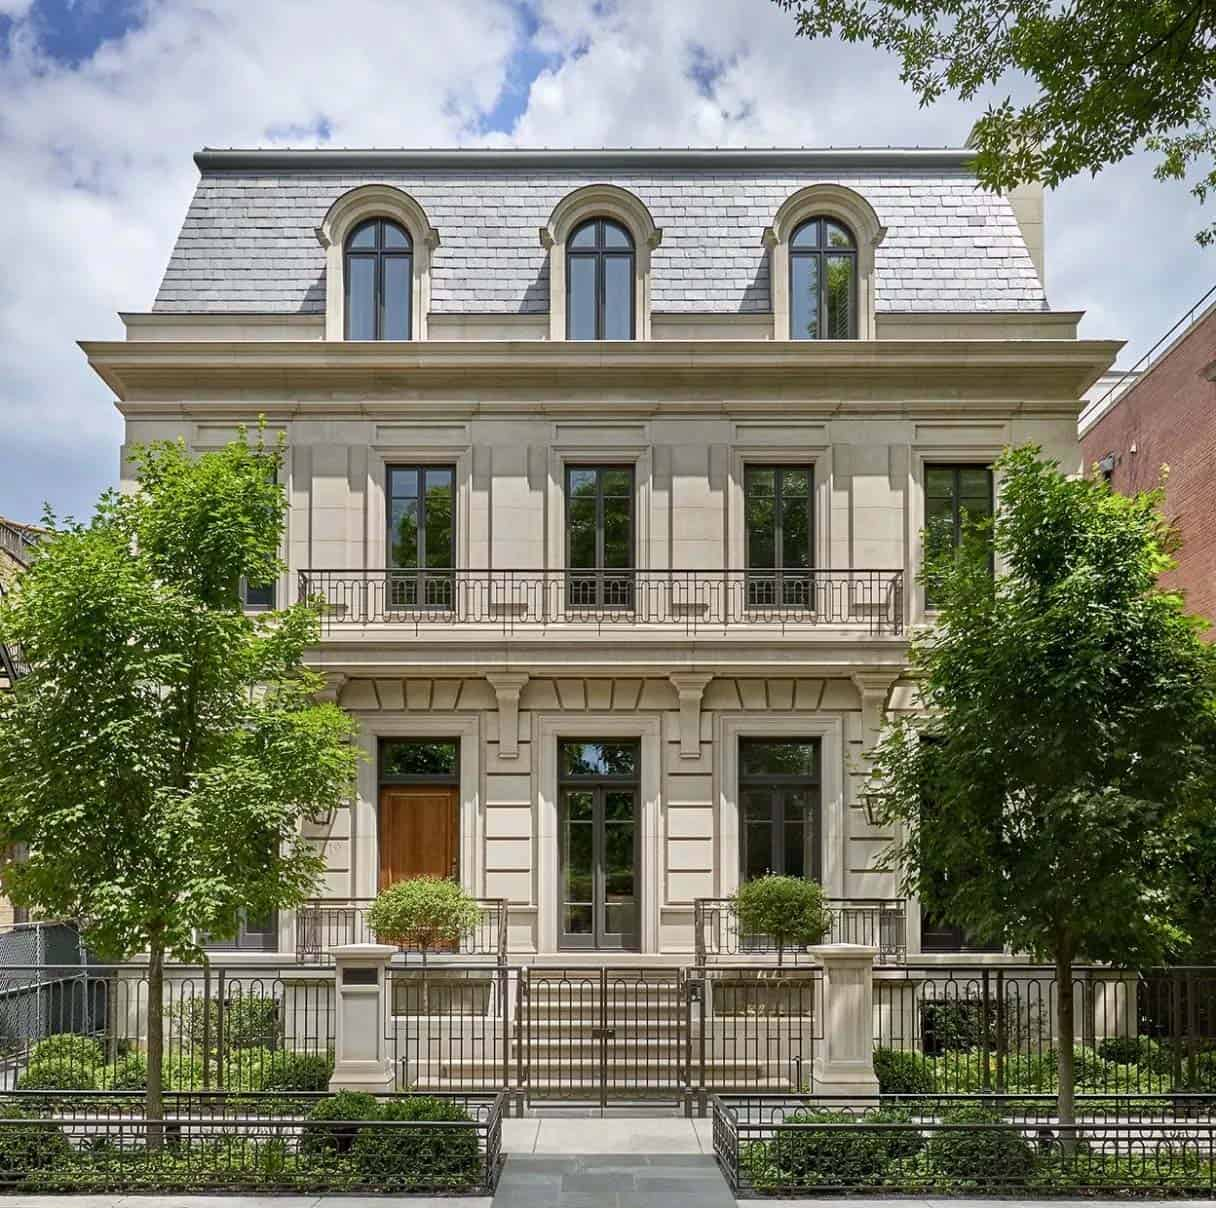 Lincoln Park Home Is A Stunning Display Of French-style